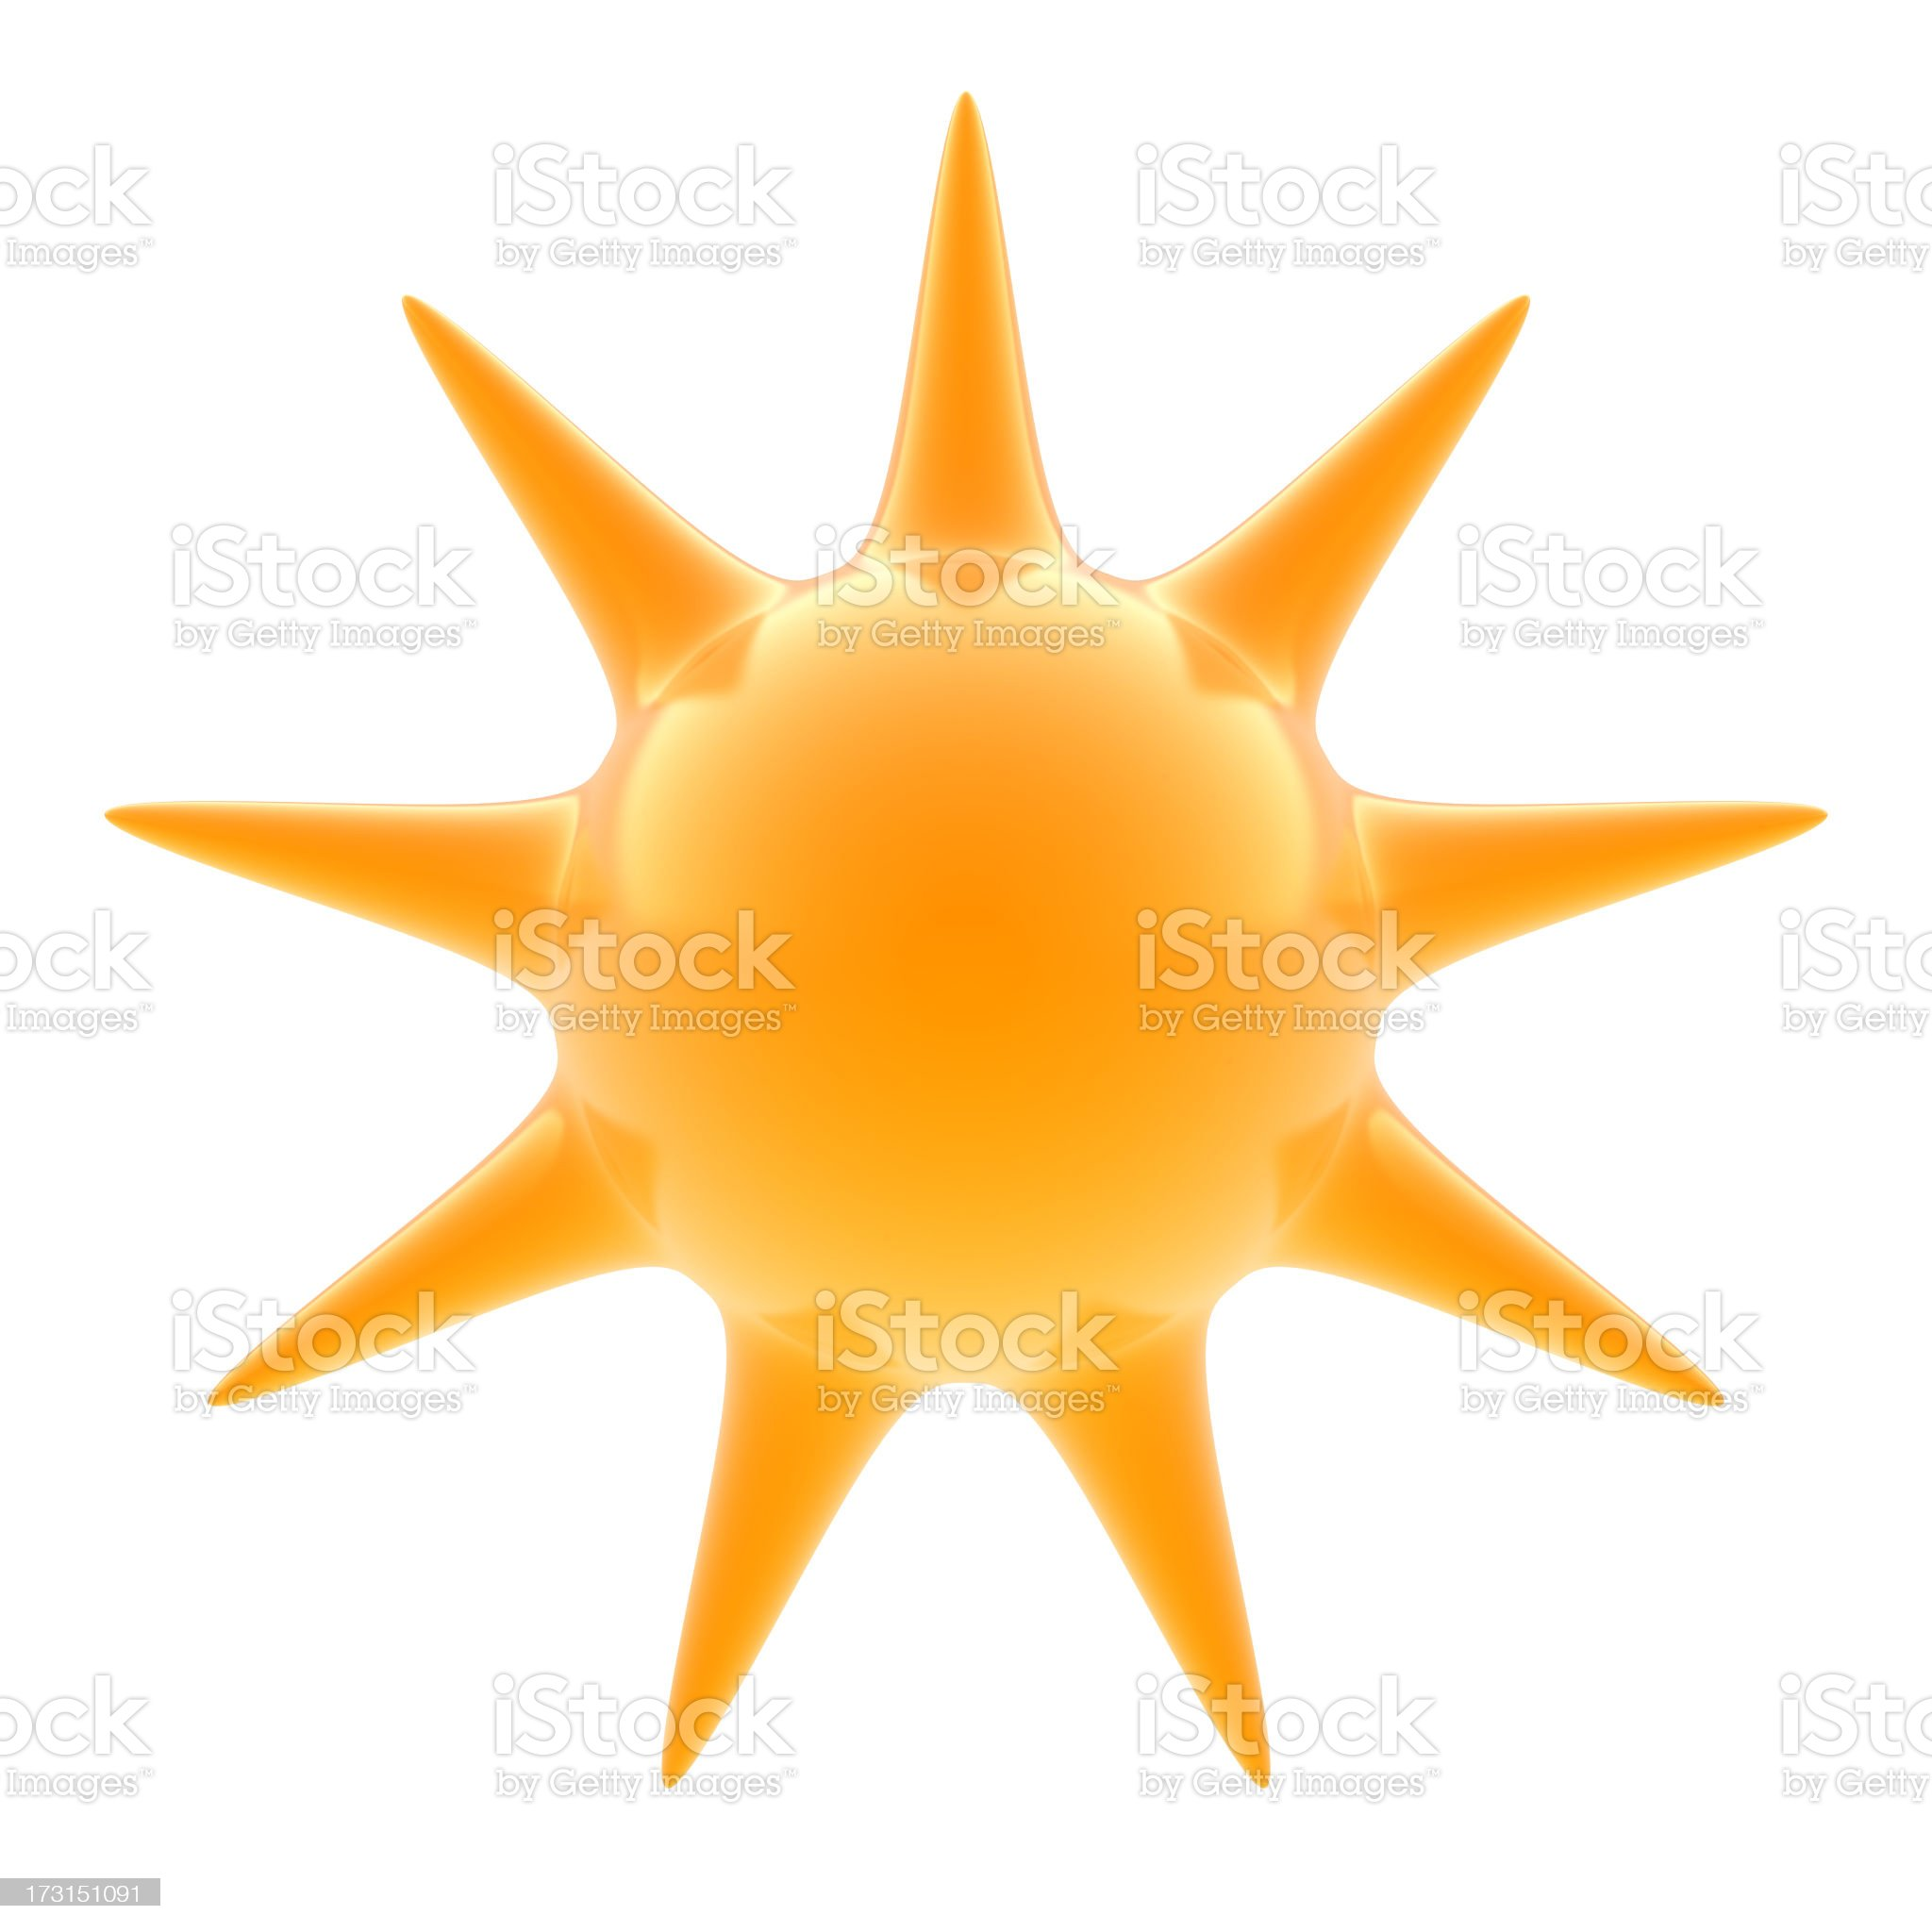 A 3d render of a glass sun on a white background royalty-free stock photo